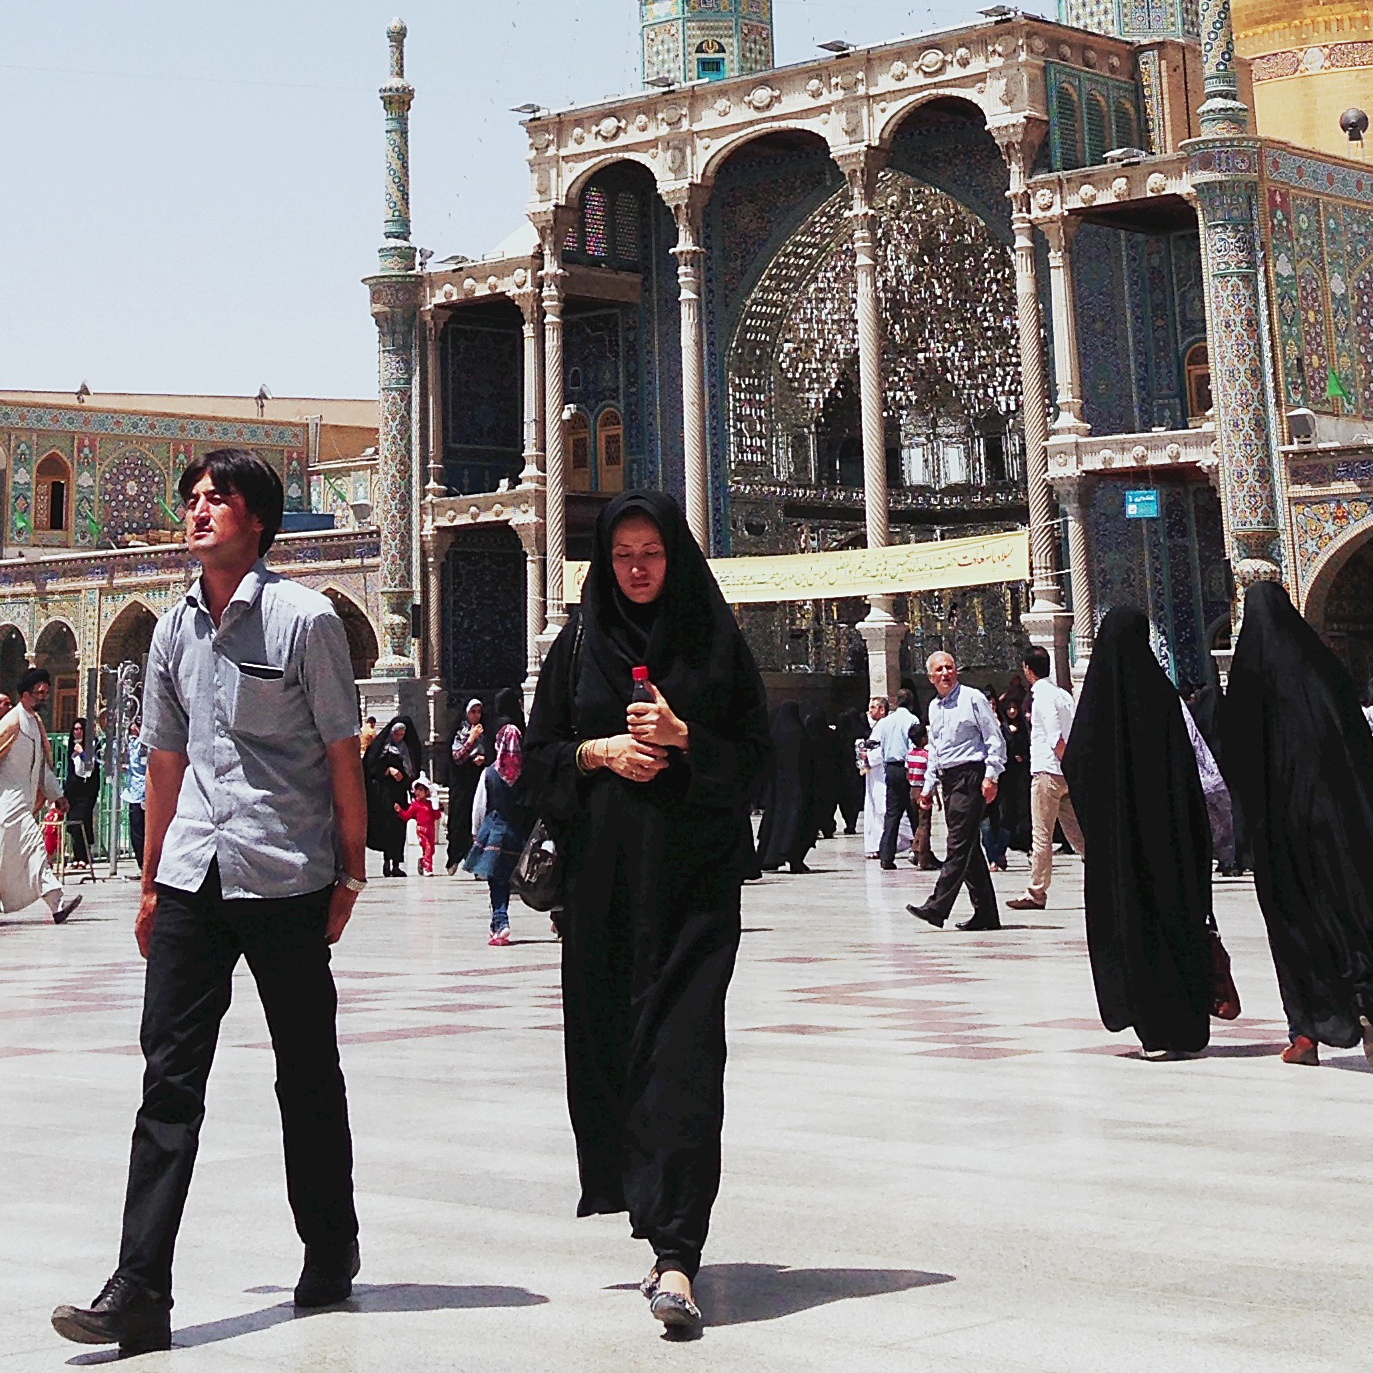 Pilgrims at the Islamic shrine of Fatimah al-Masumeh in the holy city of Qum, south of Tehran.